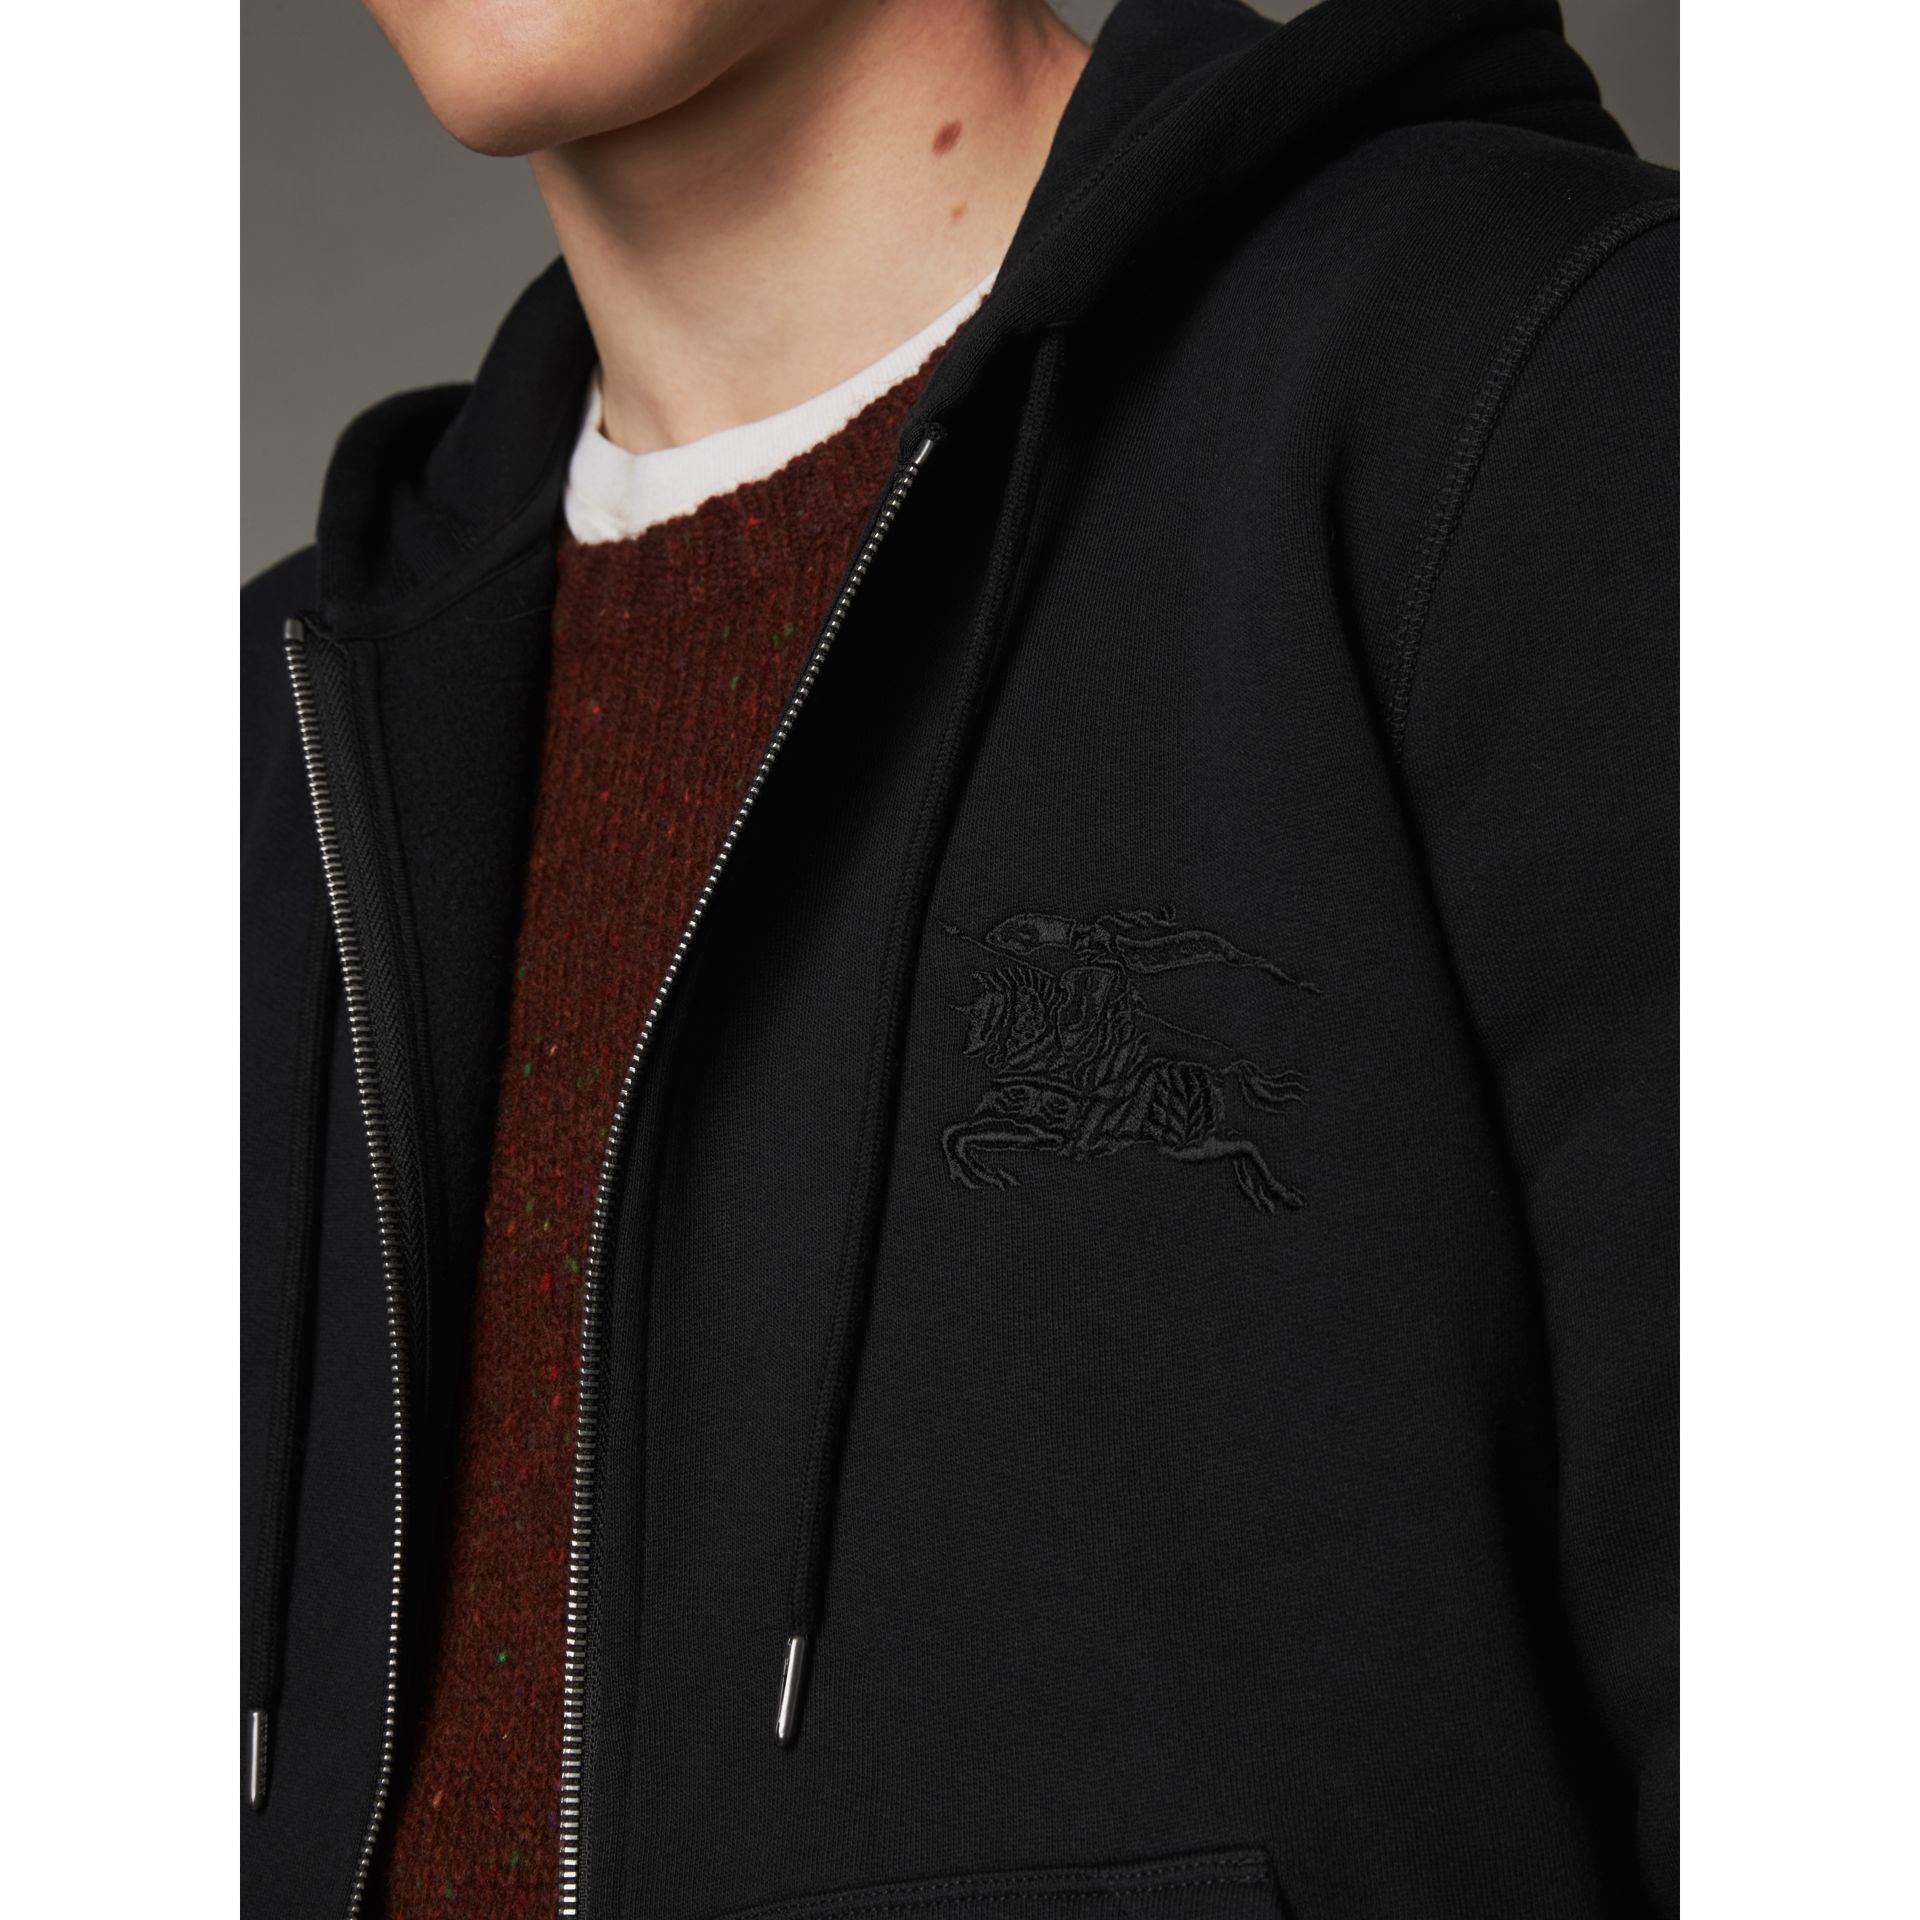 Equestrian Knight Device Jersey Hooded Zip-front Top in Black - Men | Burberry - gallery image 2